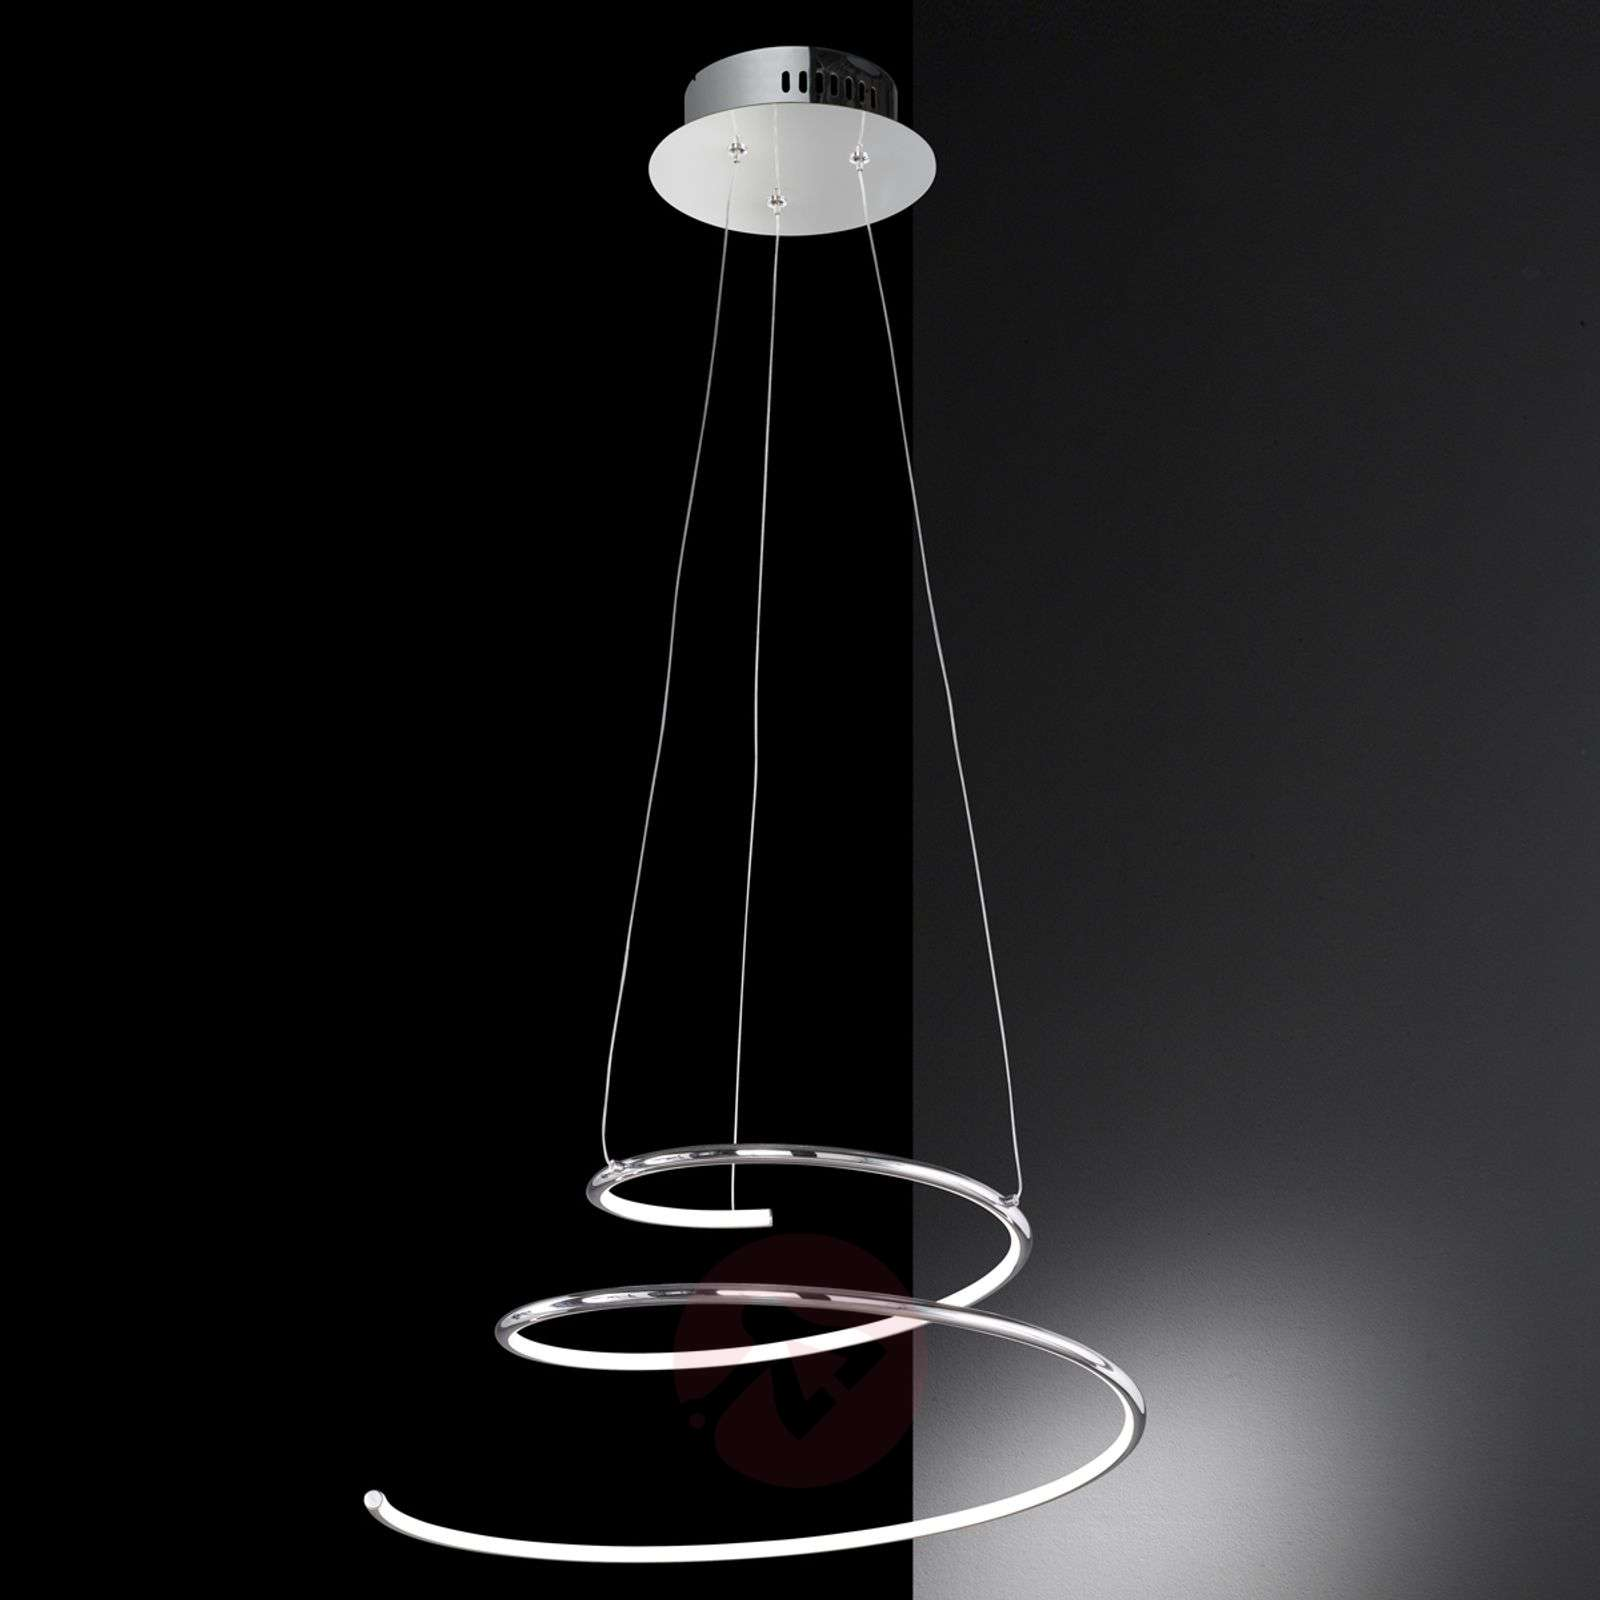 visio spiral led hanging light. Black Bedroom Furniture Sets. Home Design Ideas